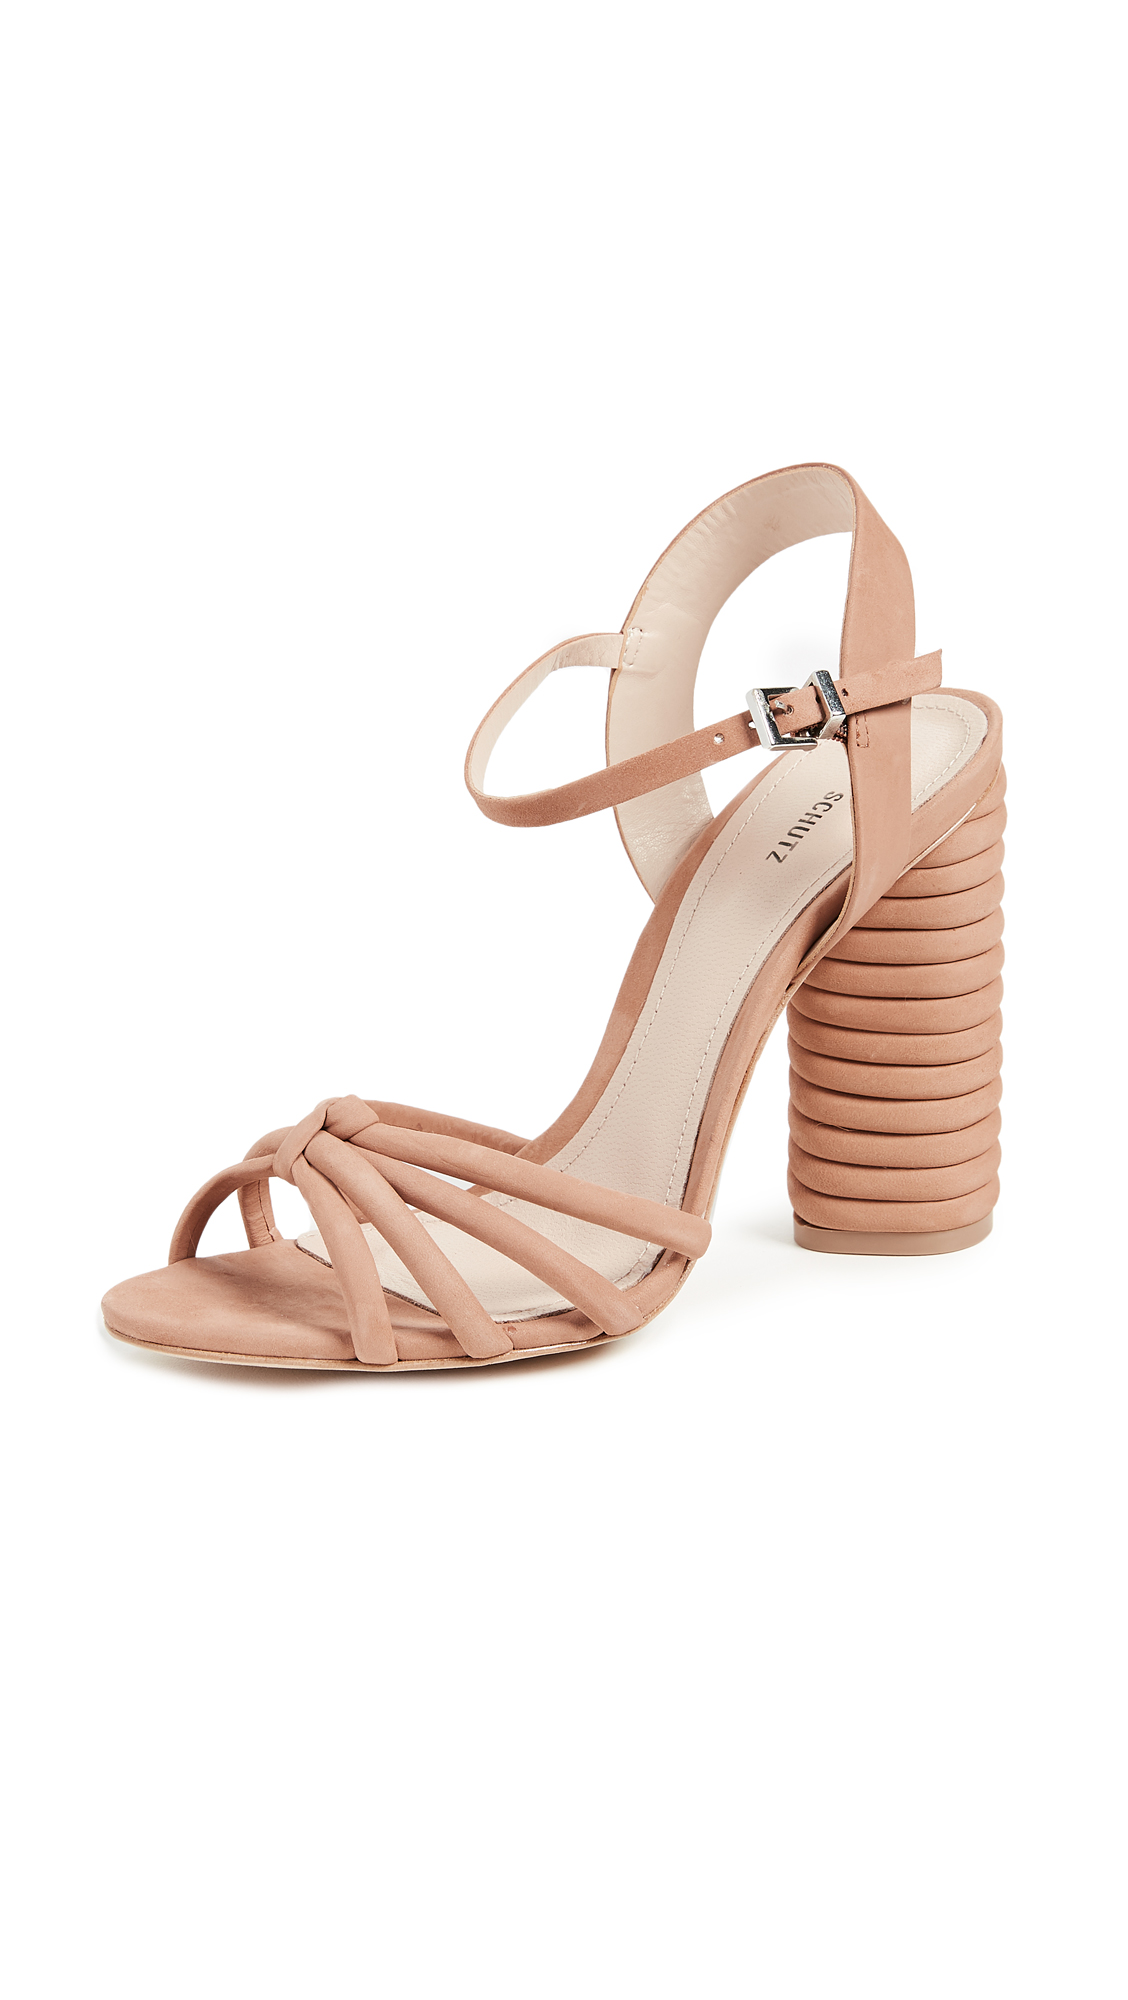 Schutz Paolla Ankle Strap Sandals - Toasted Nut